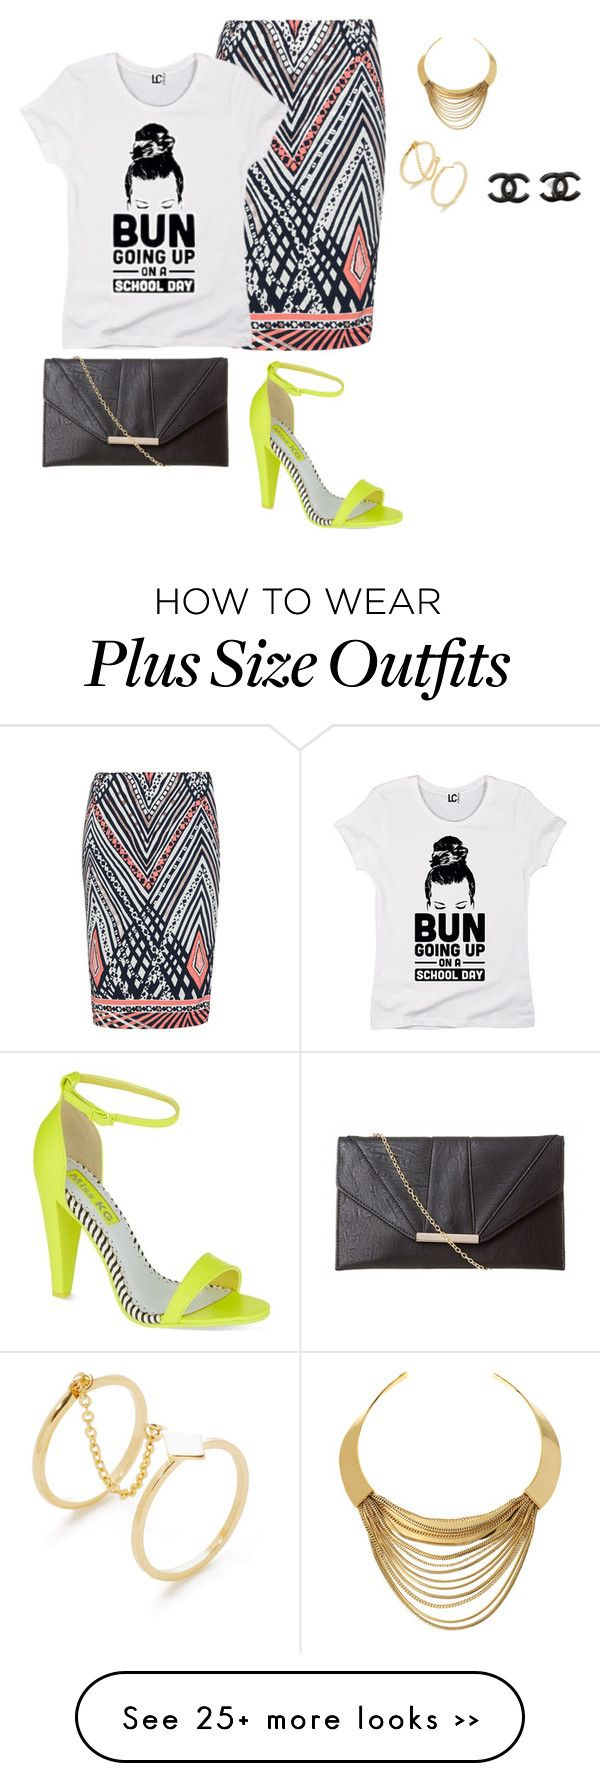 """plus size turnup in 5,4,3,2,1!!!"" by kristie-payne on Polyvore"